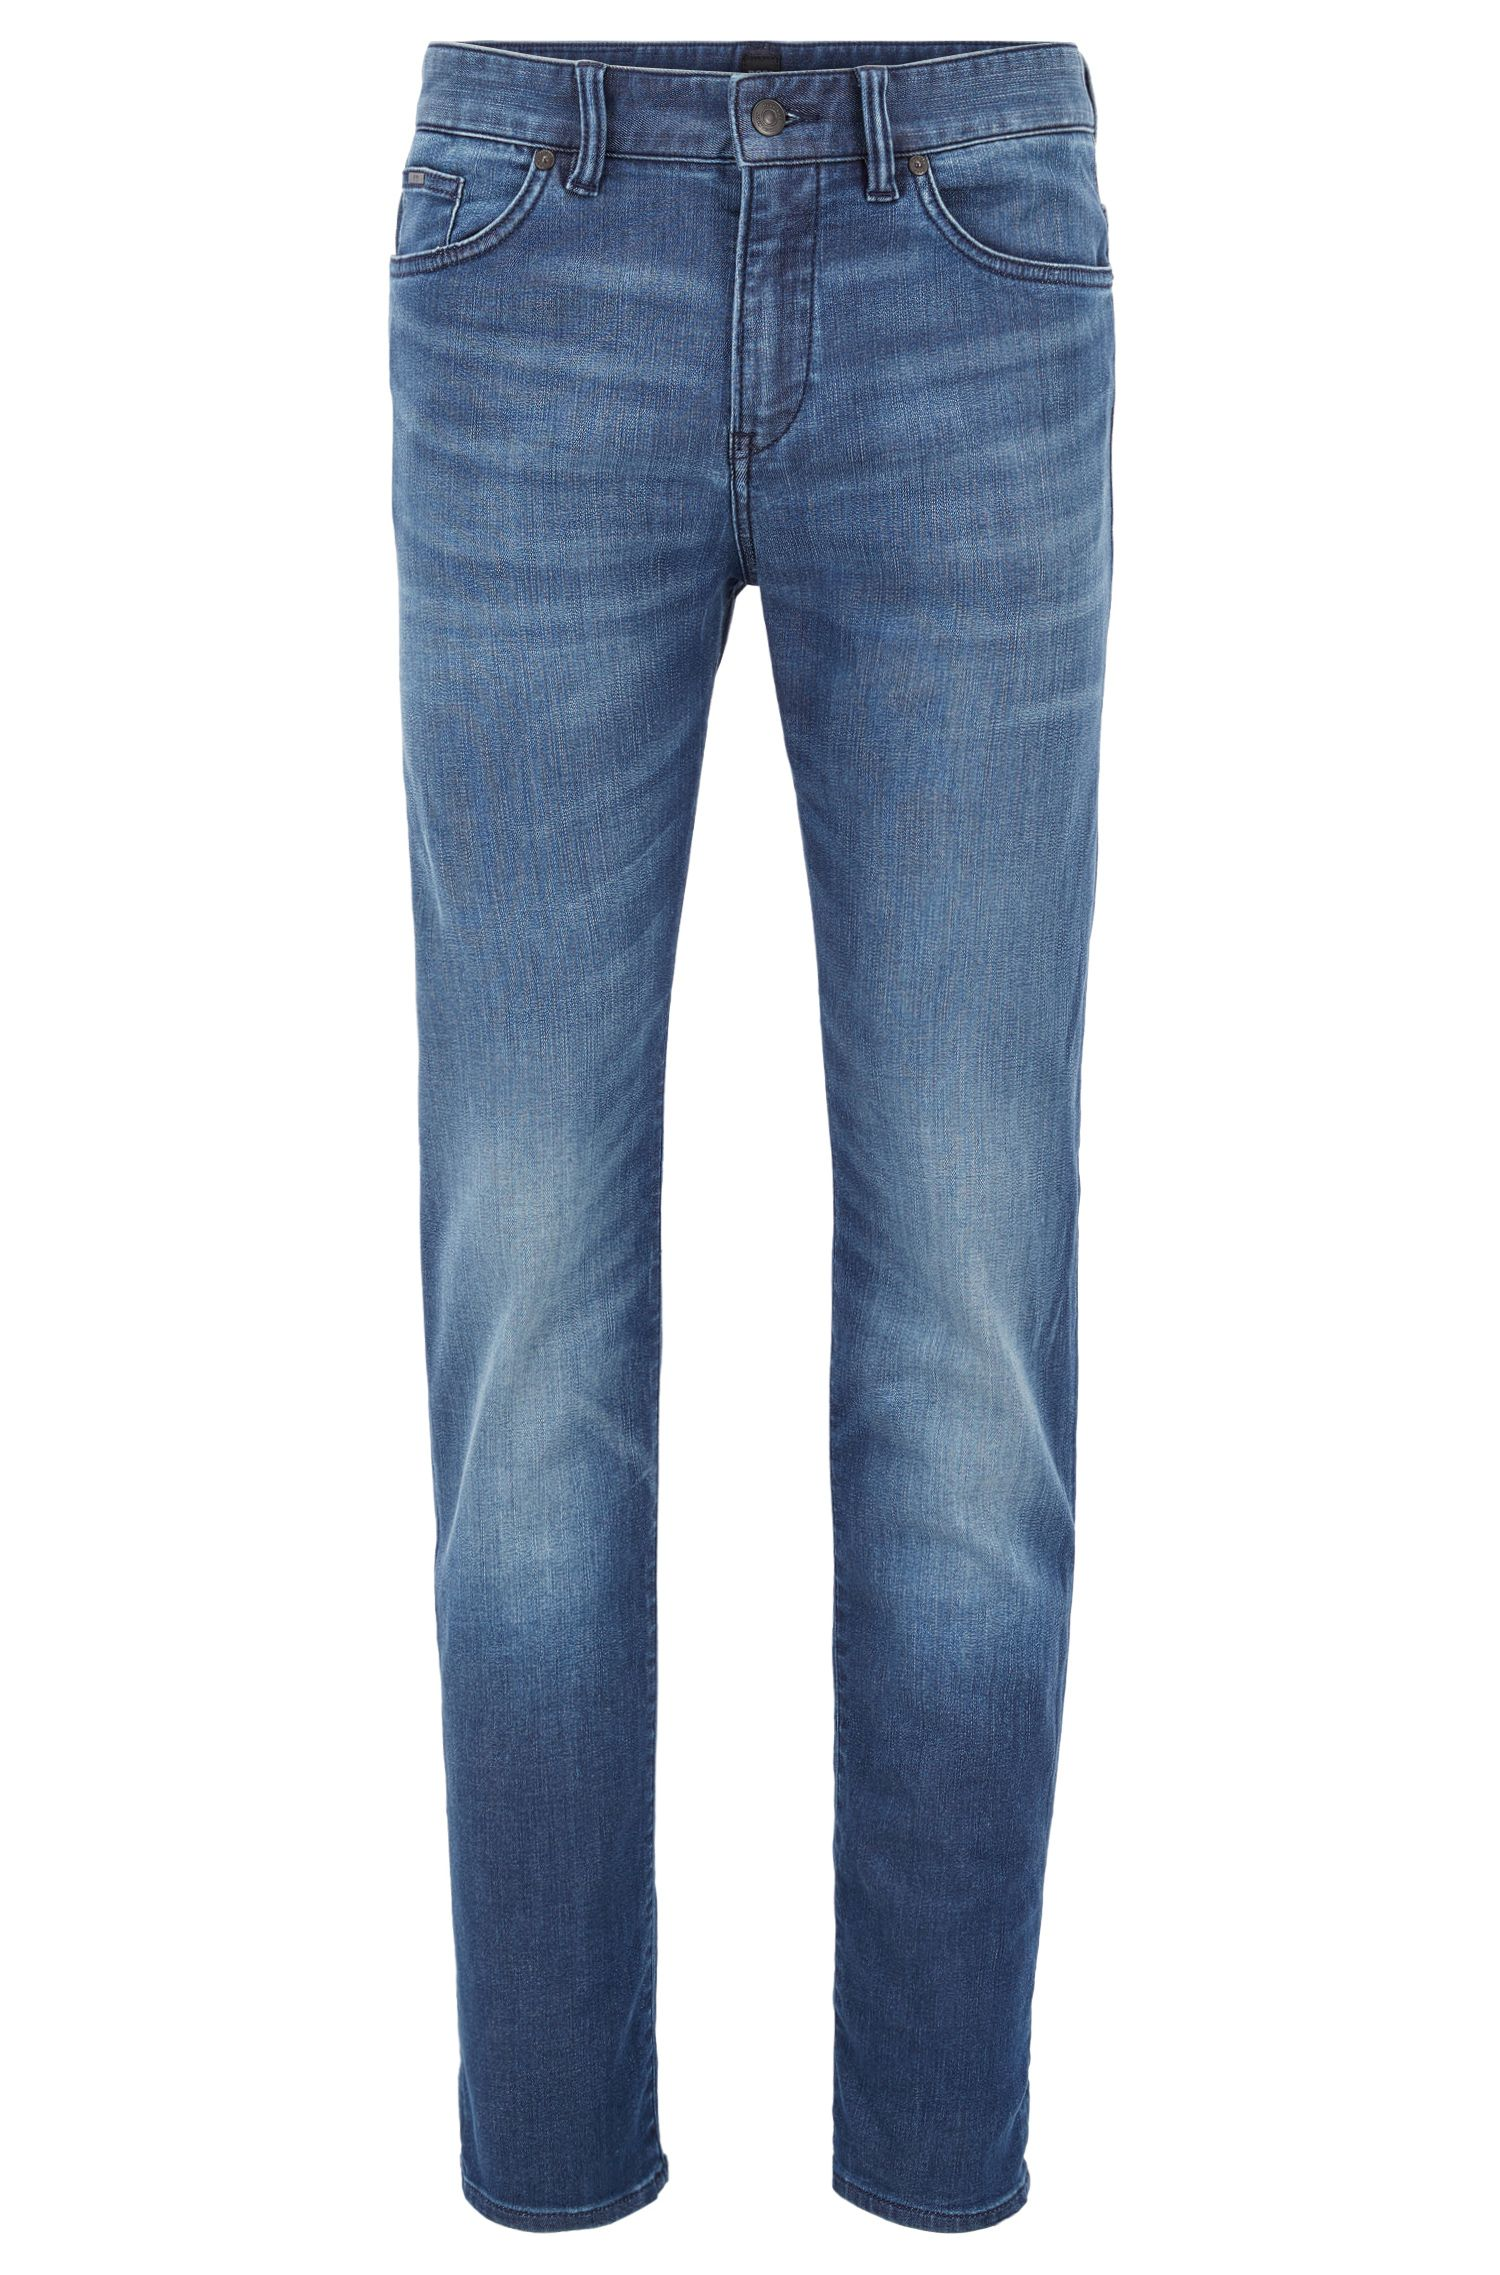 Vaqueros slim fit de denim elástico en azul medio